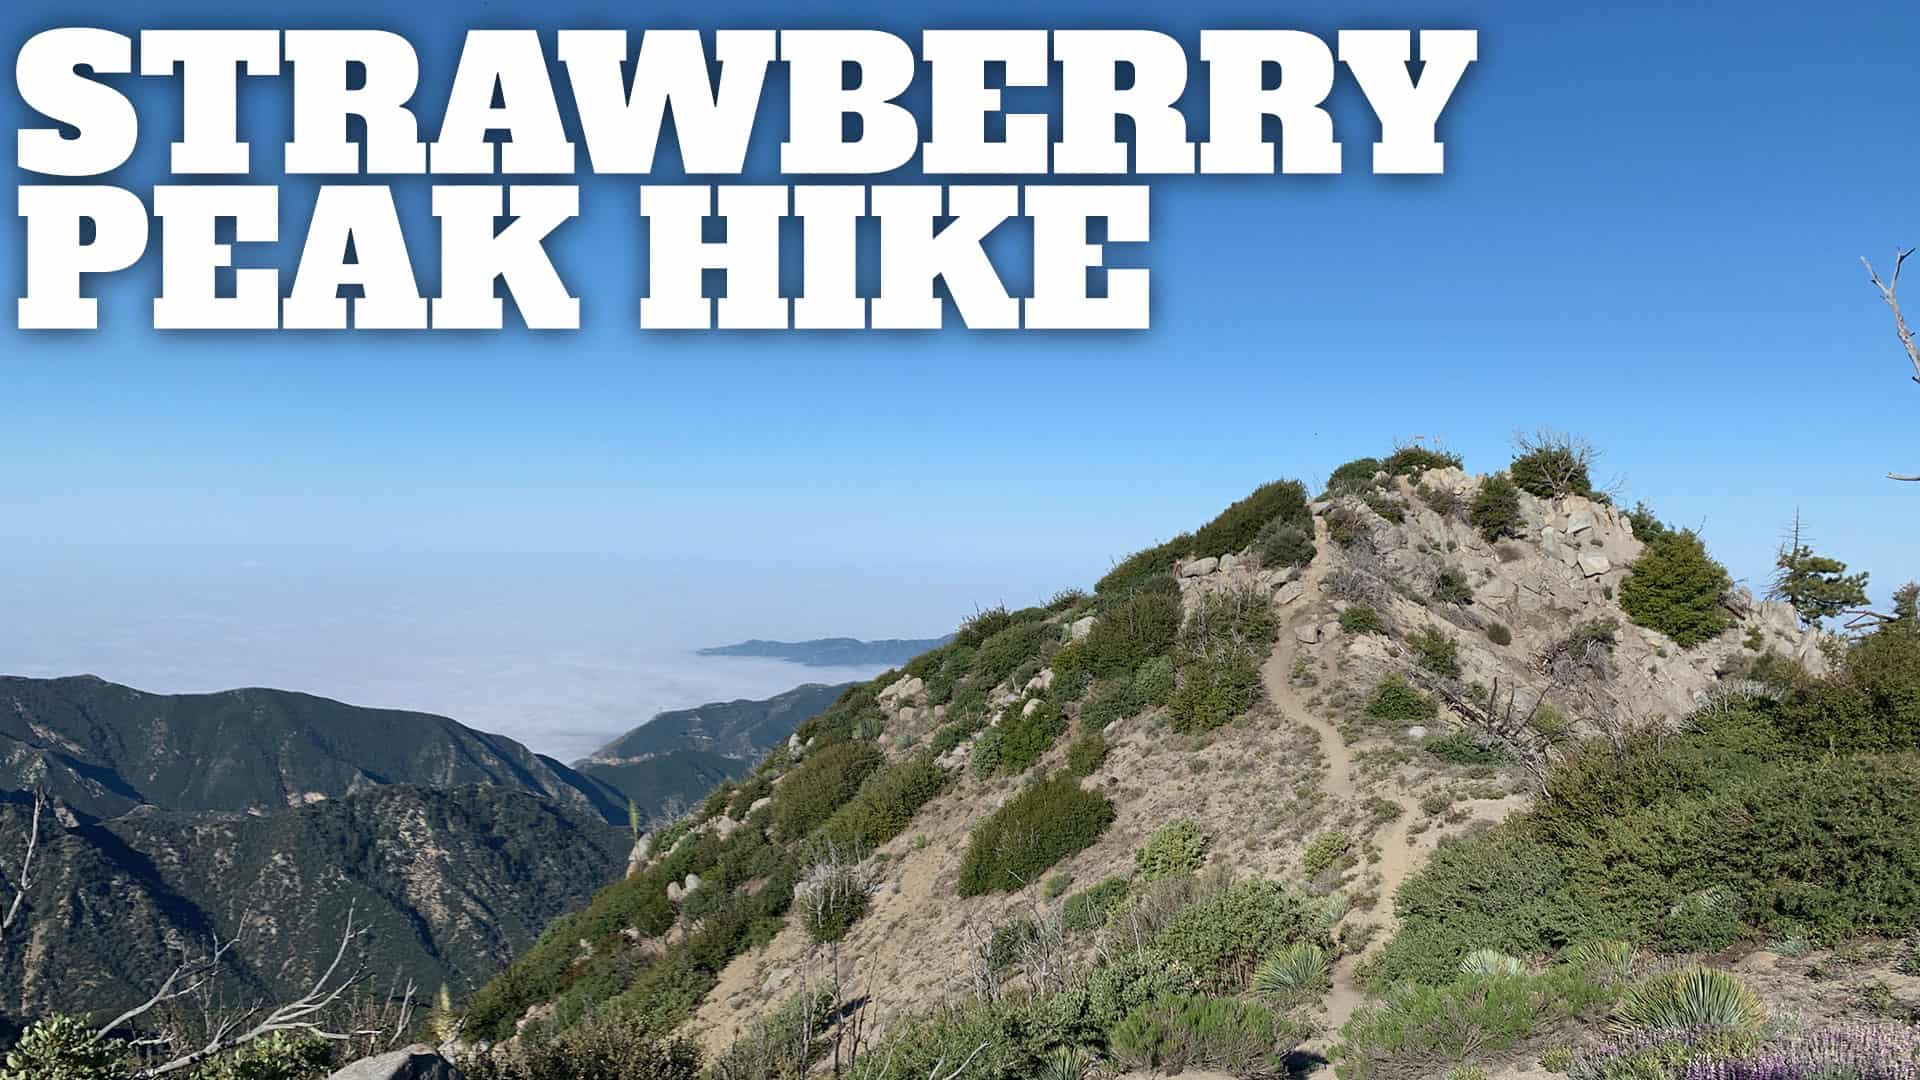 Strawberry Peak Hike